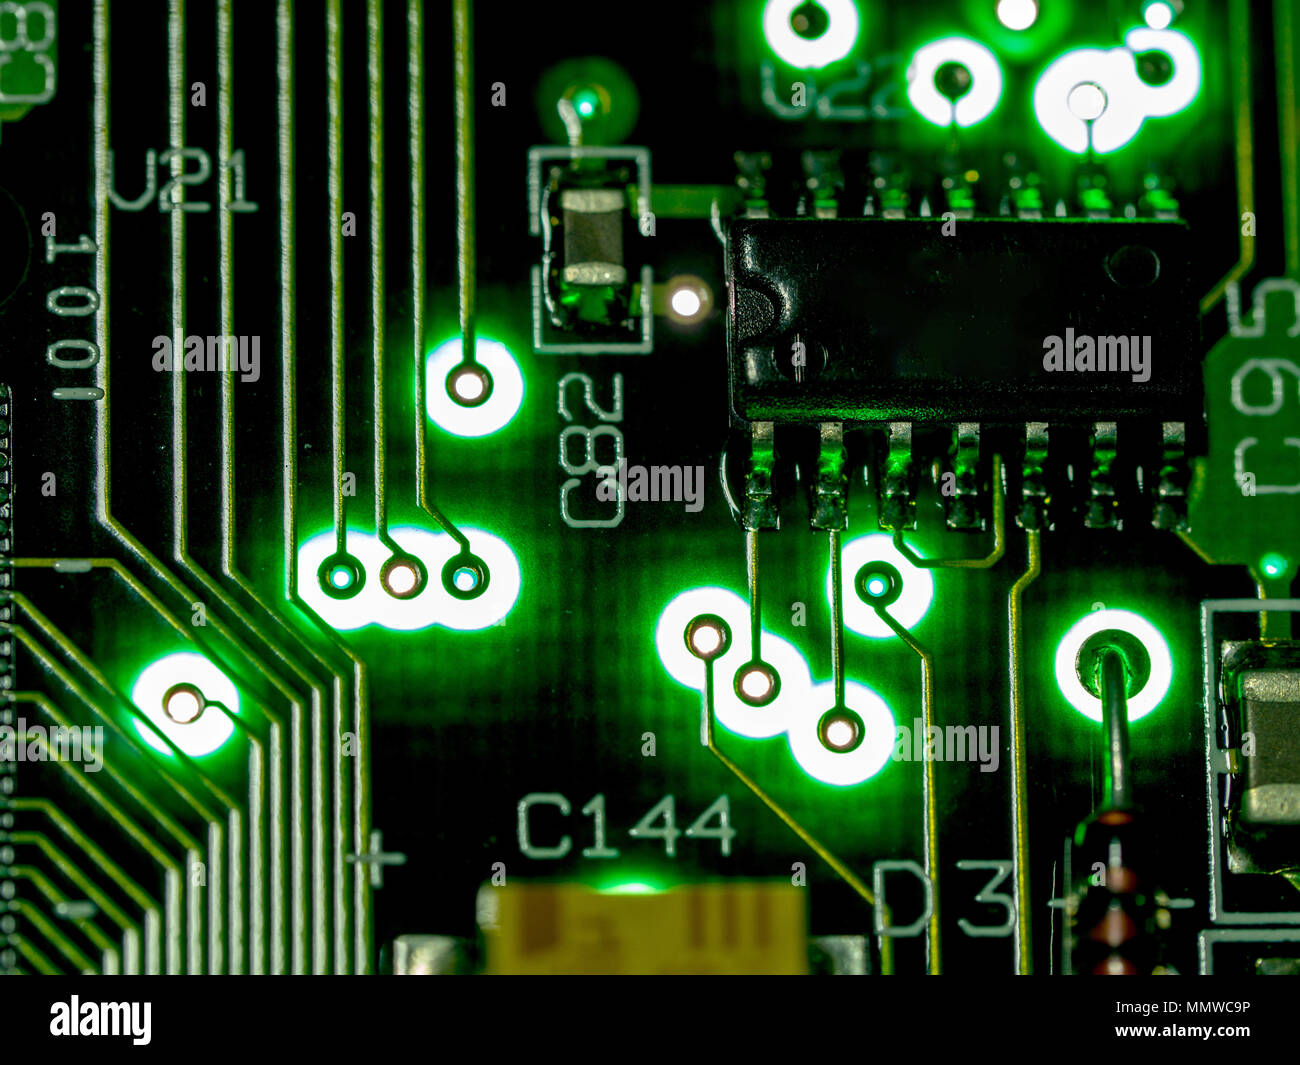 Abstract Backgroundclose Up Green Circuit Board Electronic Motherboard Components Find Computer Hardware Technology Mainboard Background Integrated Communication Pro